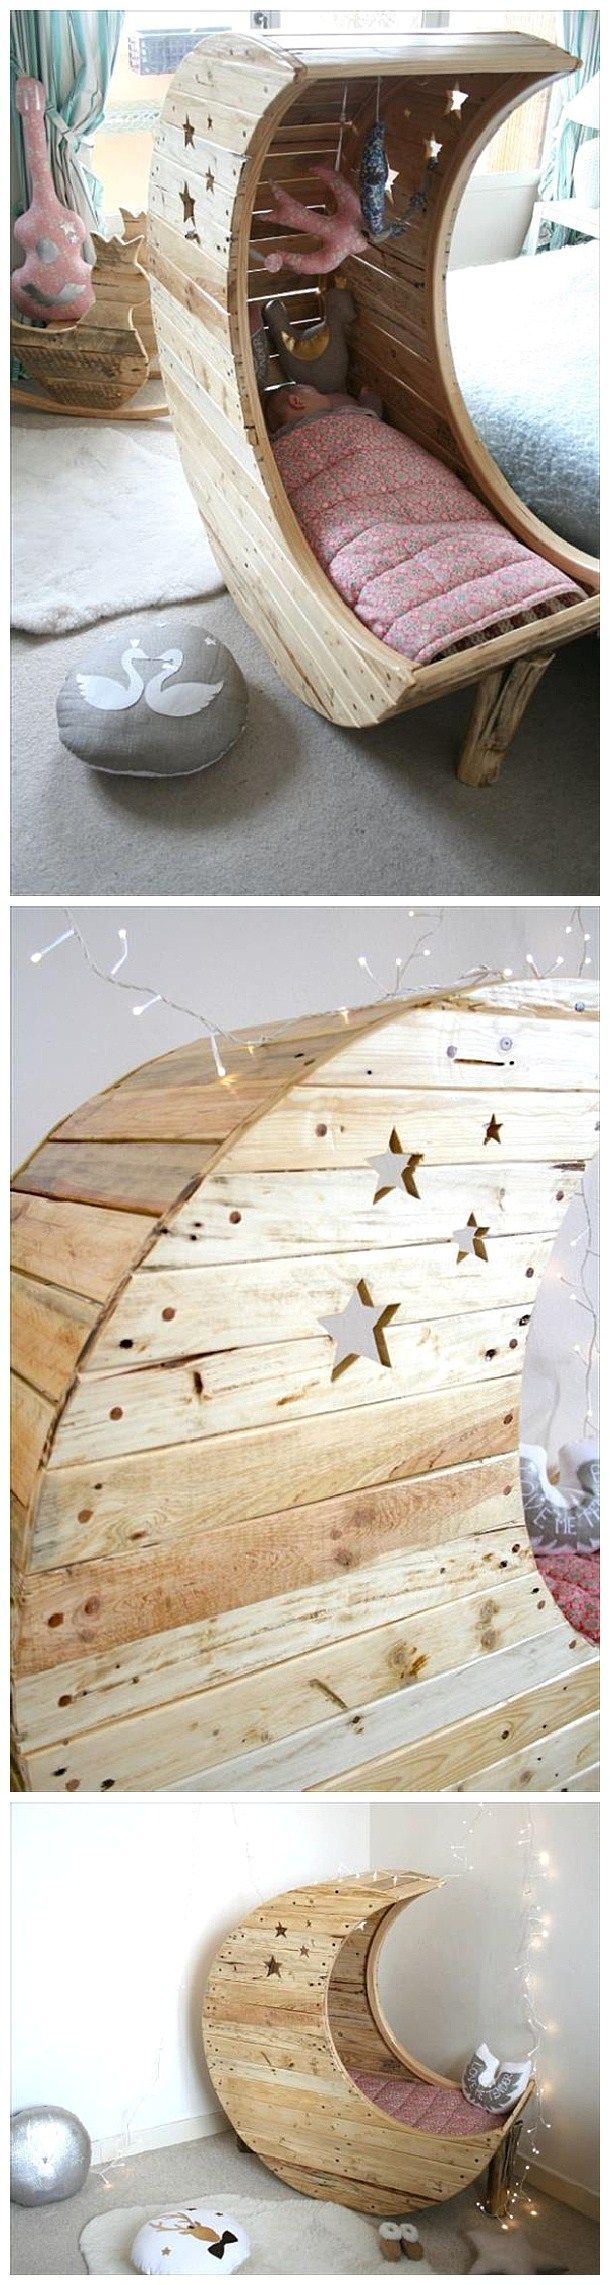 25 unique pallet projects ideas on pinterest pallet for Reclaimed pallet wood projects